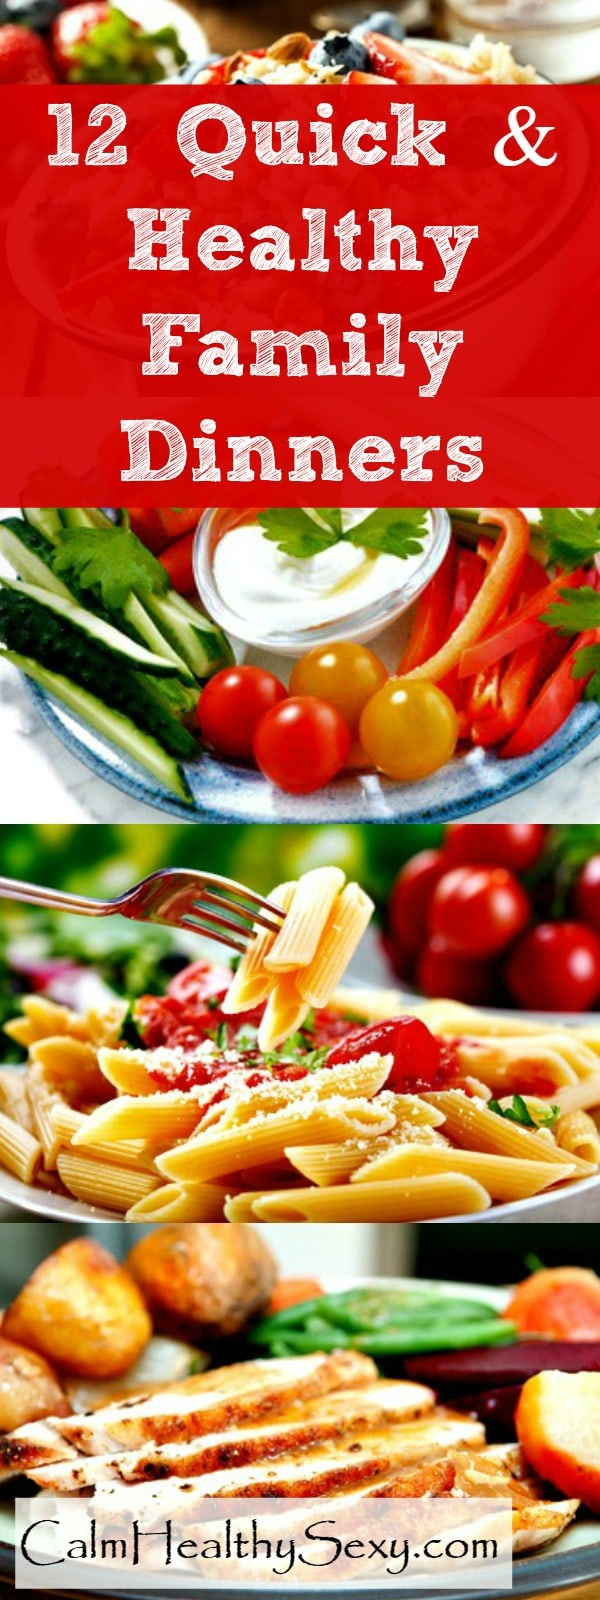 12 Quick and Healthy Family Dinners - These fast, easy, no-recipe meals will help you get a healthy dinner on the table, even on your busiest days. Dinner ideas | Healthy meals | Quick family meals